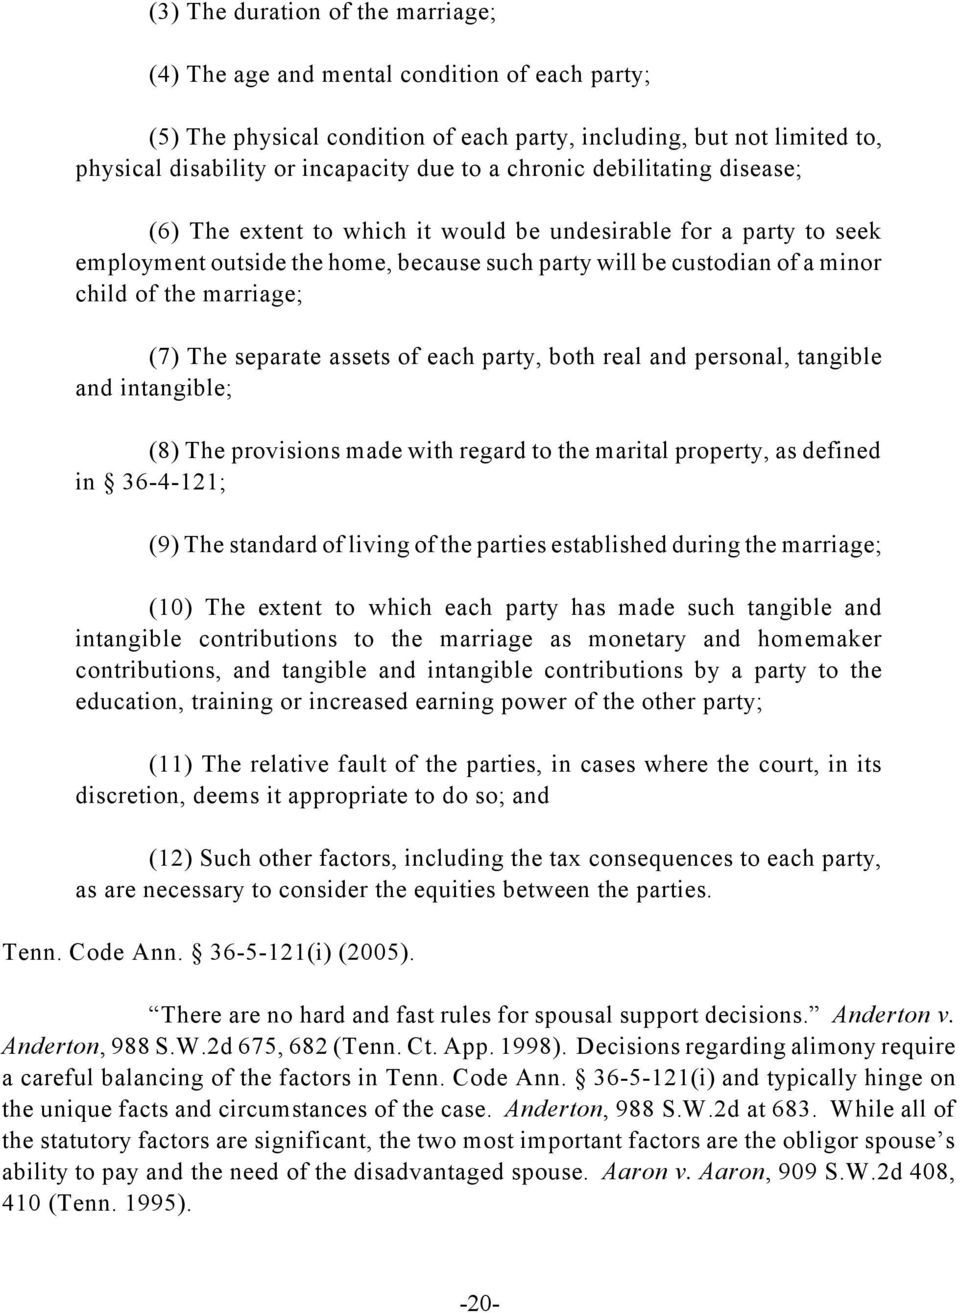 (7) The separate assets of each party, both real and personal, tangible and intangible; (8) The provisions made with regard to the marital property, as defined in 36-4-121; (9) The standard of living